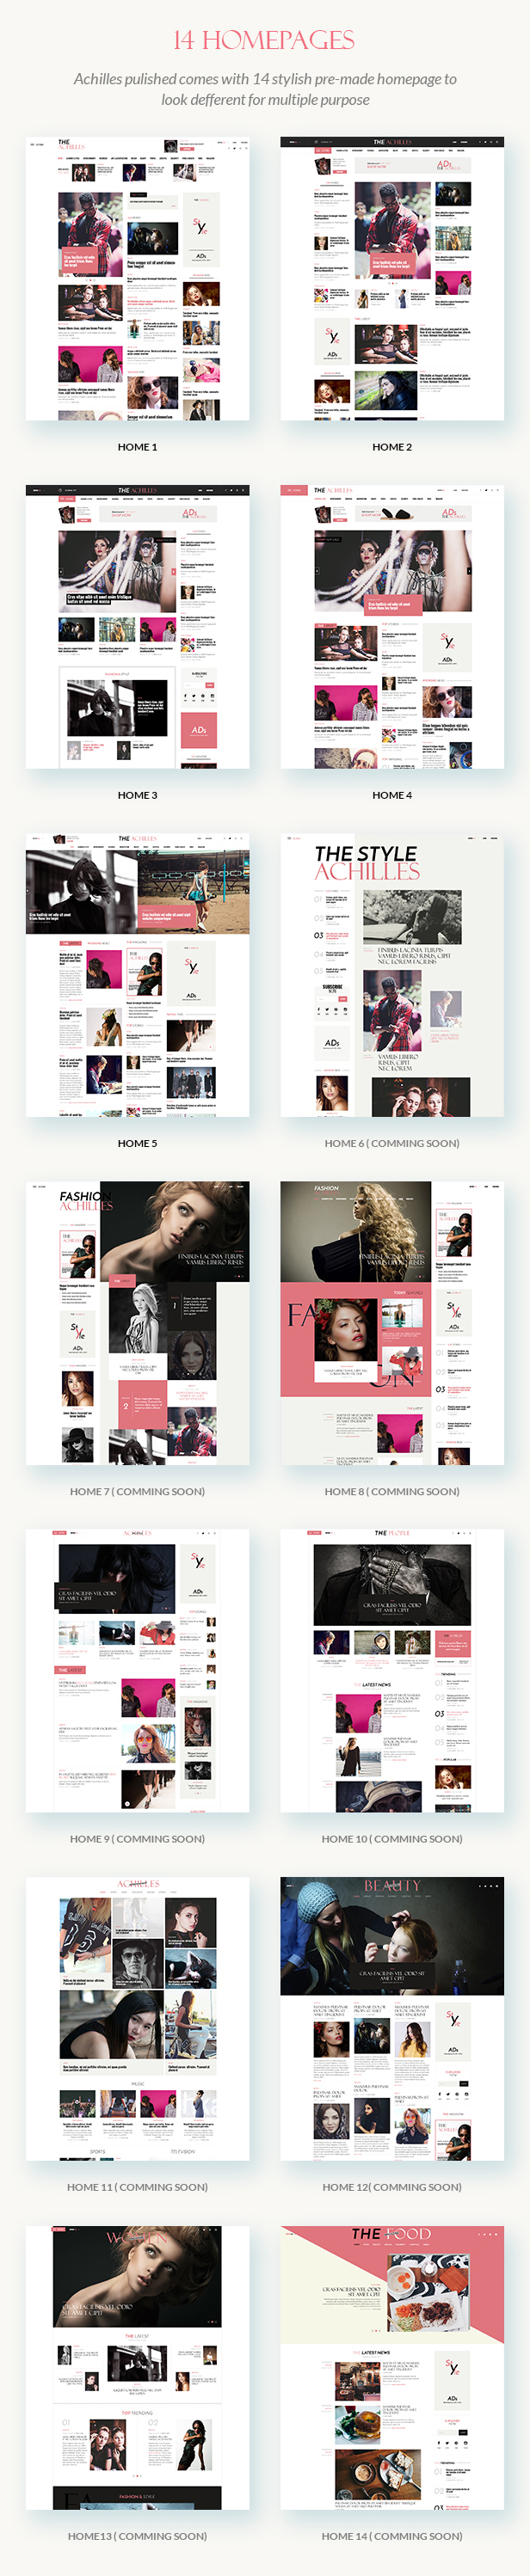 Achilles - Multipurpose Magazine & Blog WordPress Theme - 10